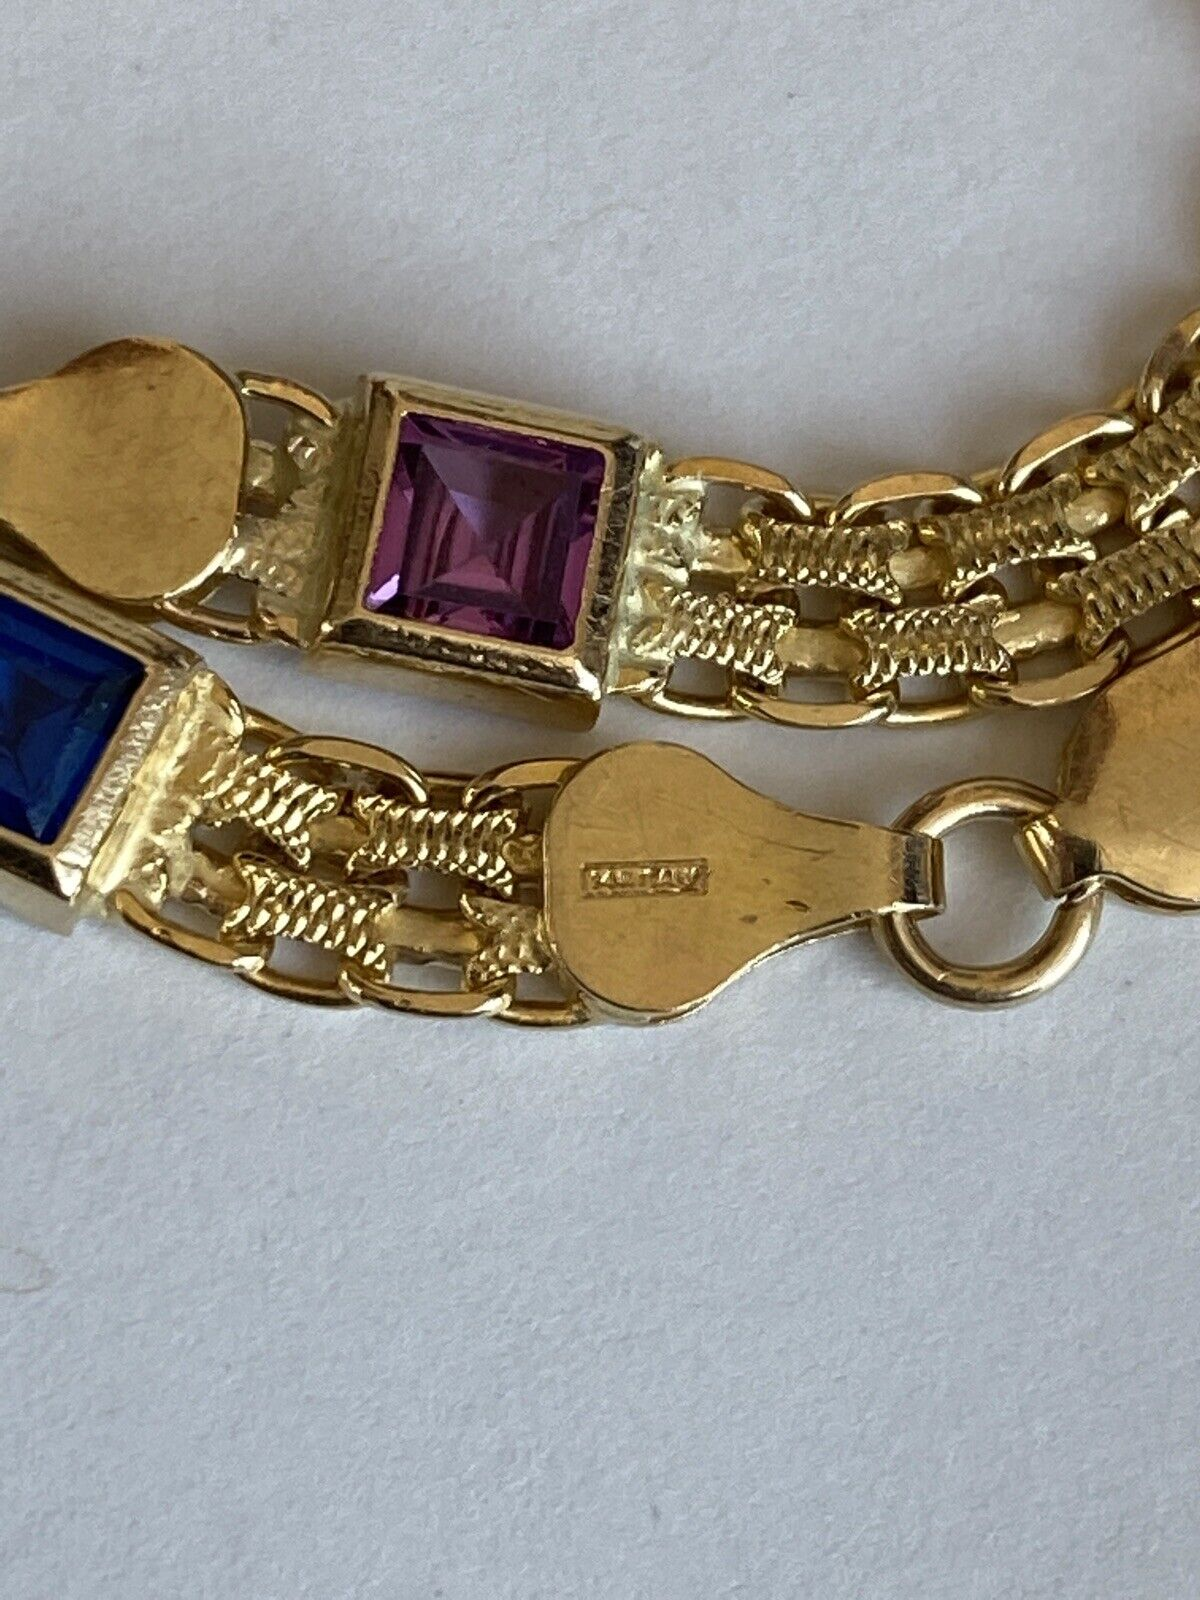 14k Yellow Gold w/ Colored Stones Women's Bracelet 6.3mm  7 1/4 Inches PRETTY!!! 9